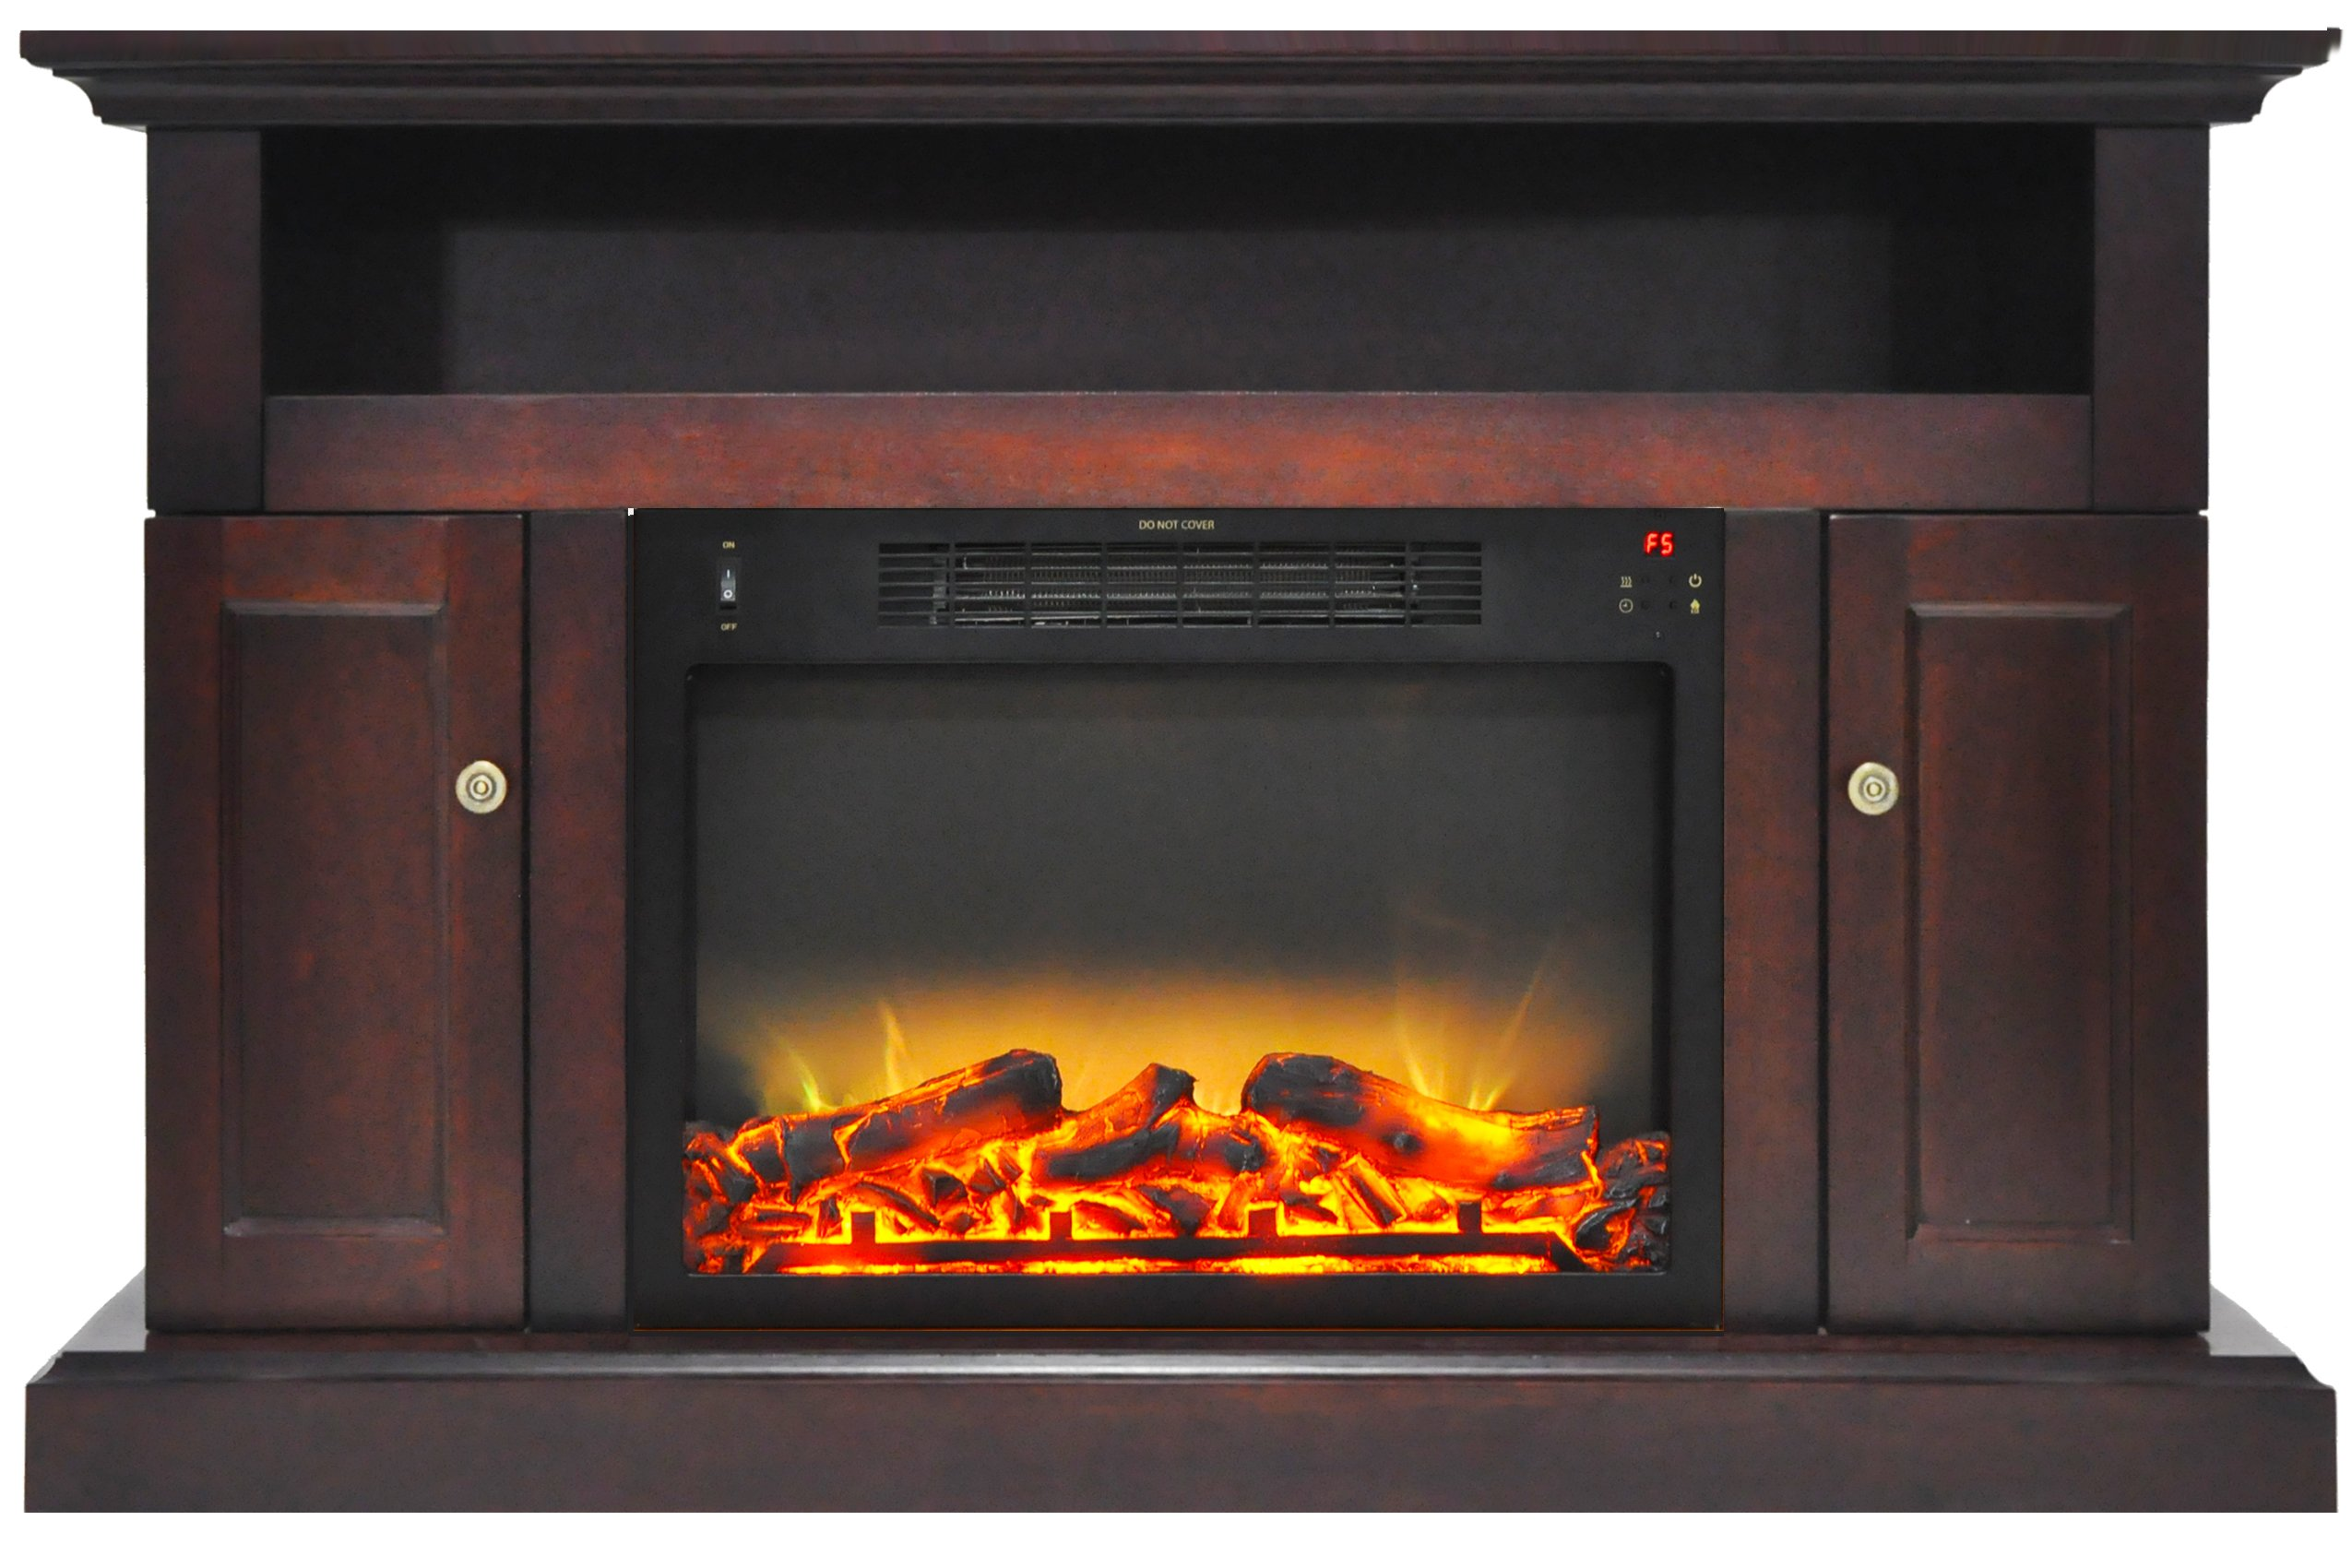 Fireplace Grate Blowers Wood Burning Cambridge Sorrento Electric Fireplace Heater With 47